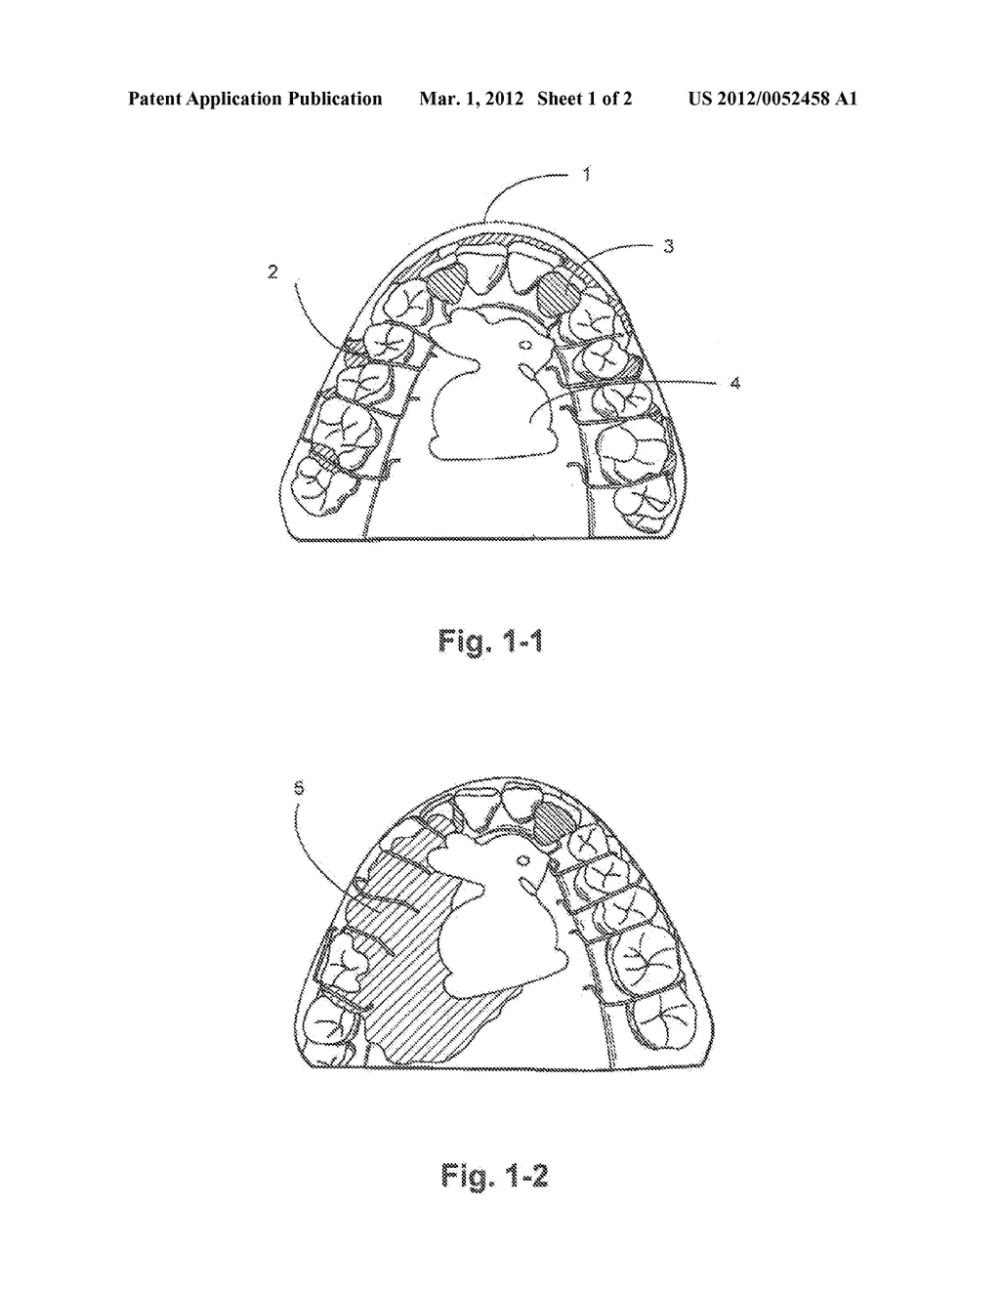 medium resolution of removable orthodontic or orthopedic appliance with inlaid design piece and the method of construction diagram